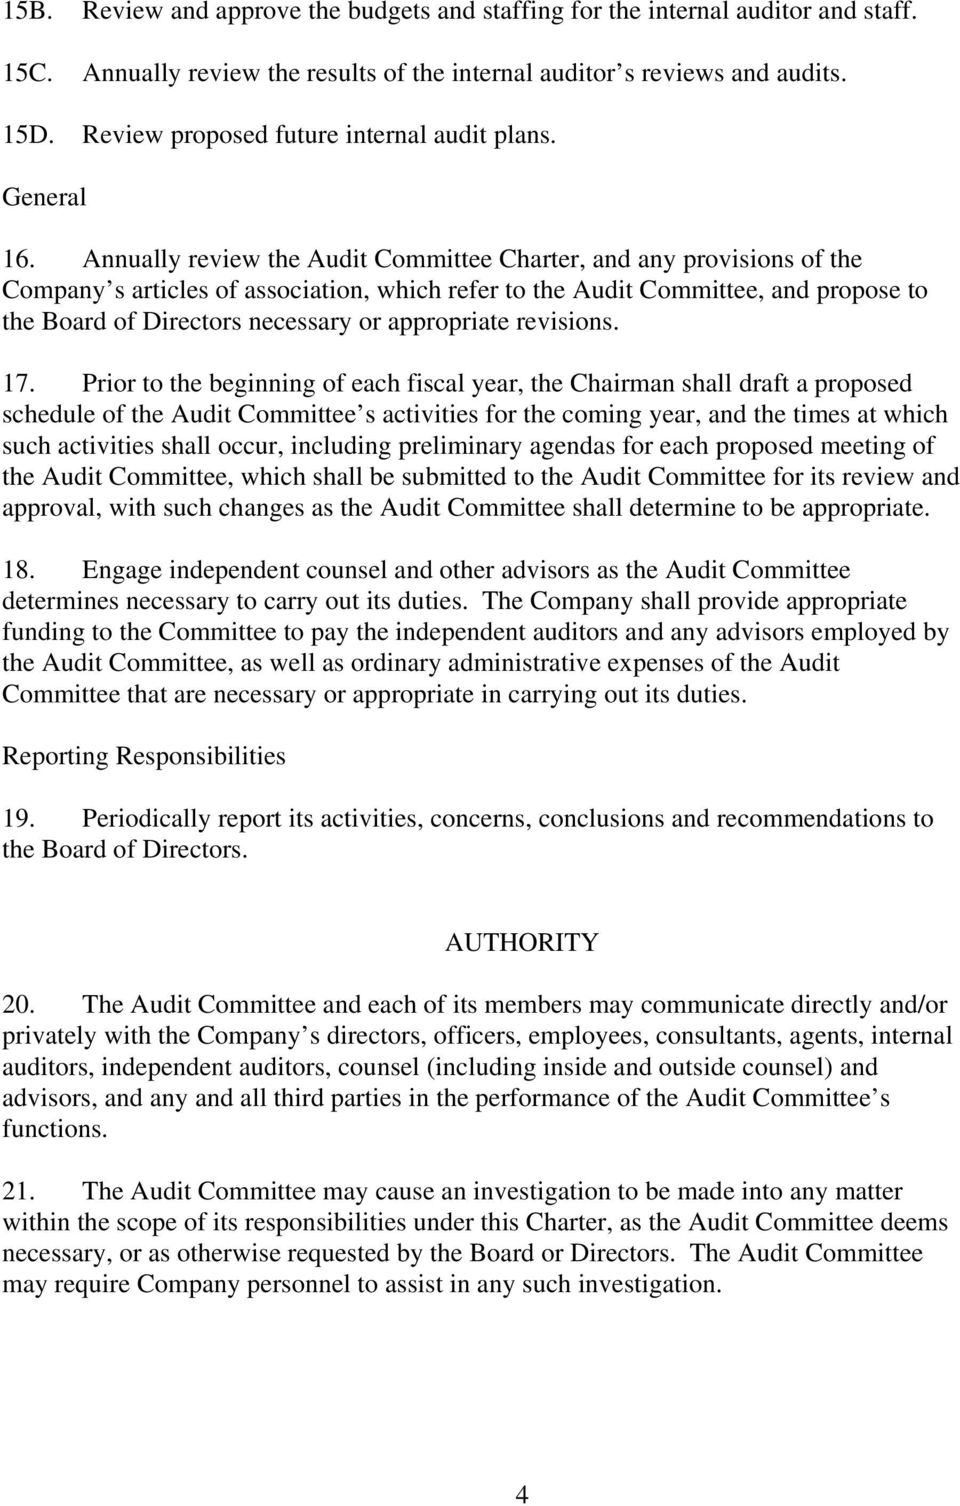 Annually review the Audit Committee Charter, and any provisions of the Company s articles of association, which refer to the Audit Committee, and propose to the Board of Directors necessary or